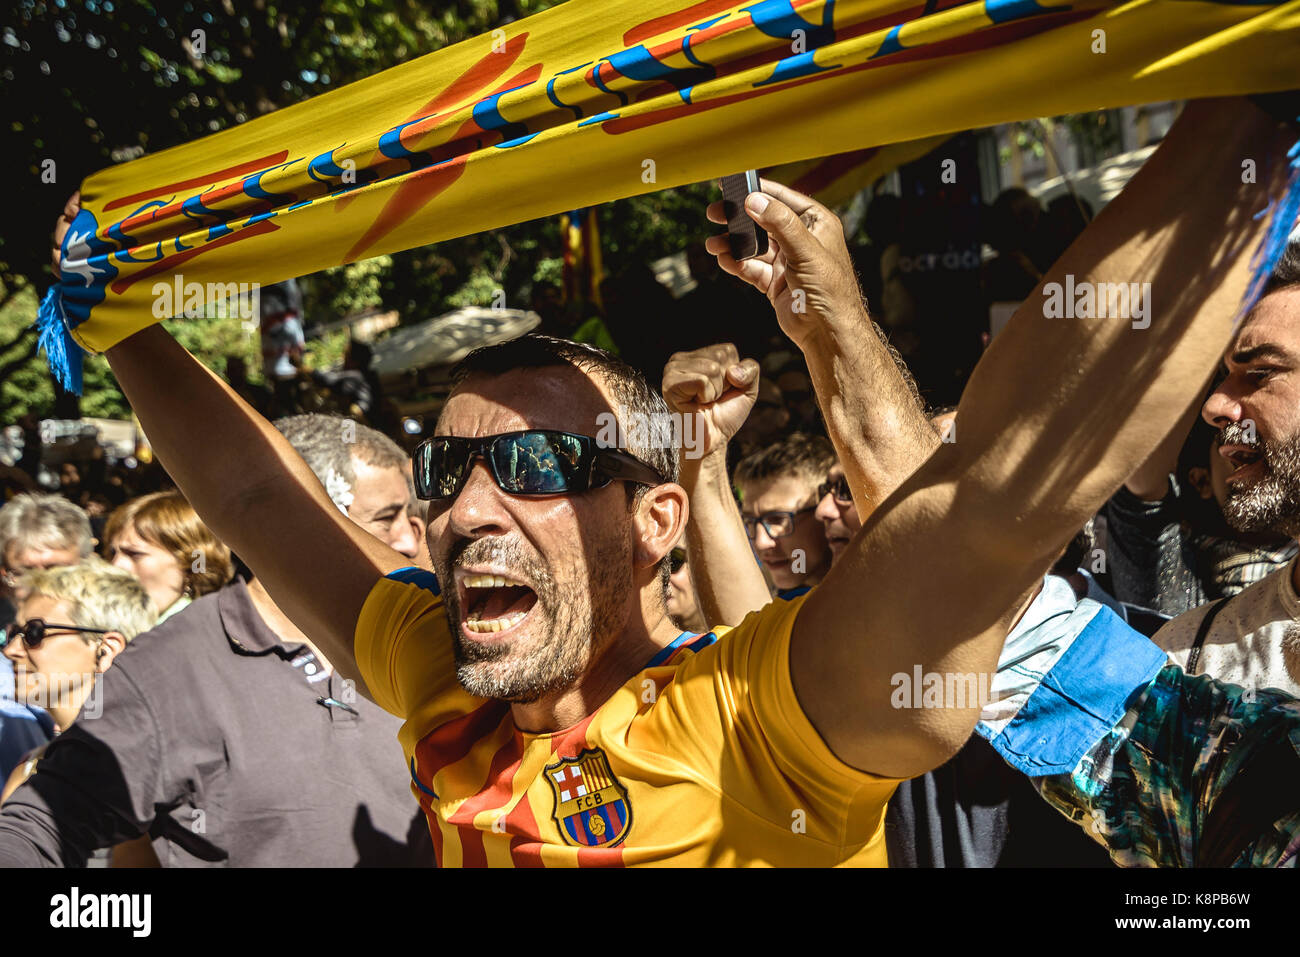 Barcelona, Spain. 20 September, 2017: Catalan separatists wave 'Estelada' flags and placards as they protest - Stock Image